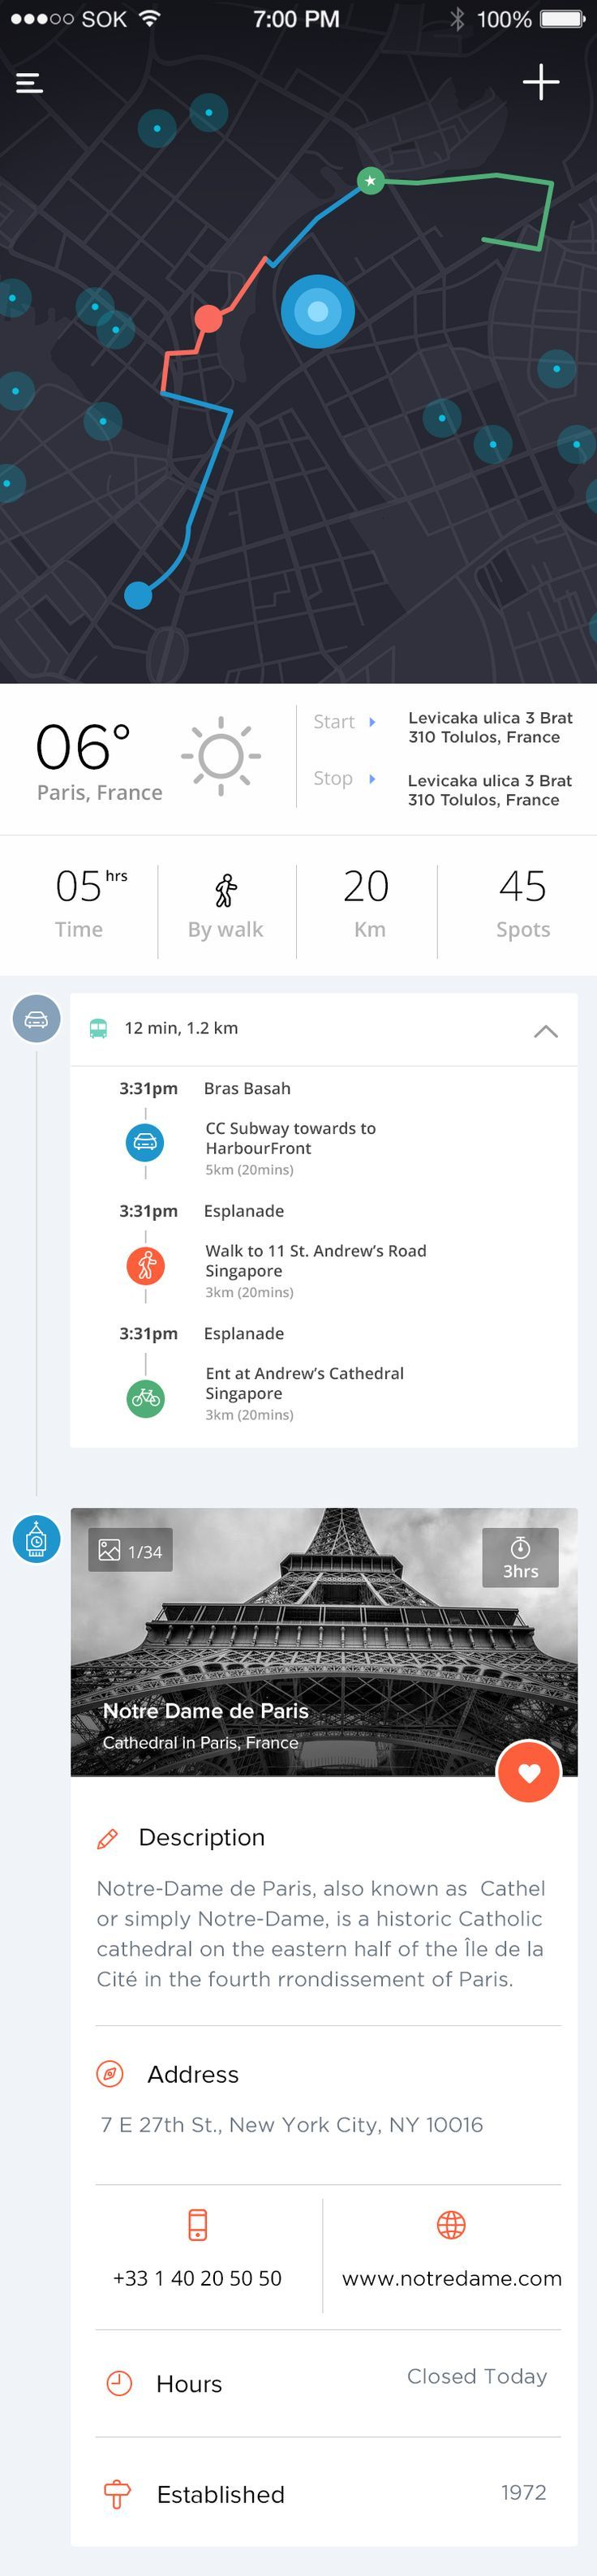 Simple, yet elegant UI for a navigation system. i like the minimal approach, because too much visual clutter makes it difficult to navigate.